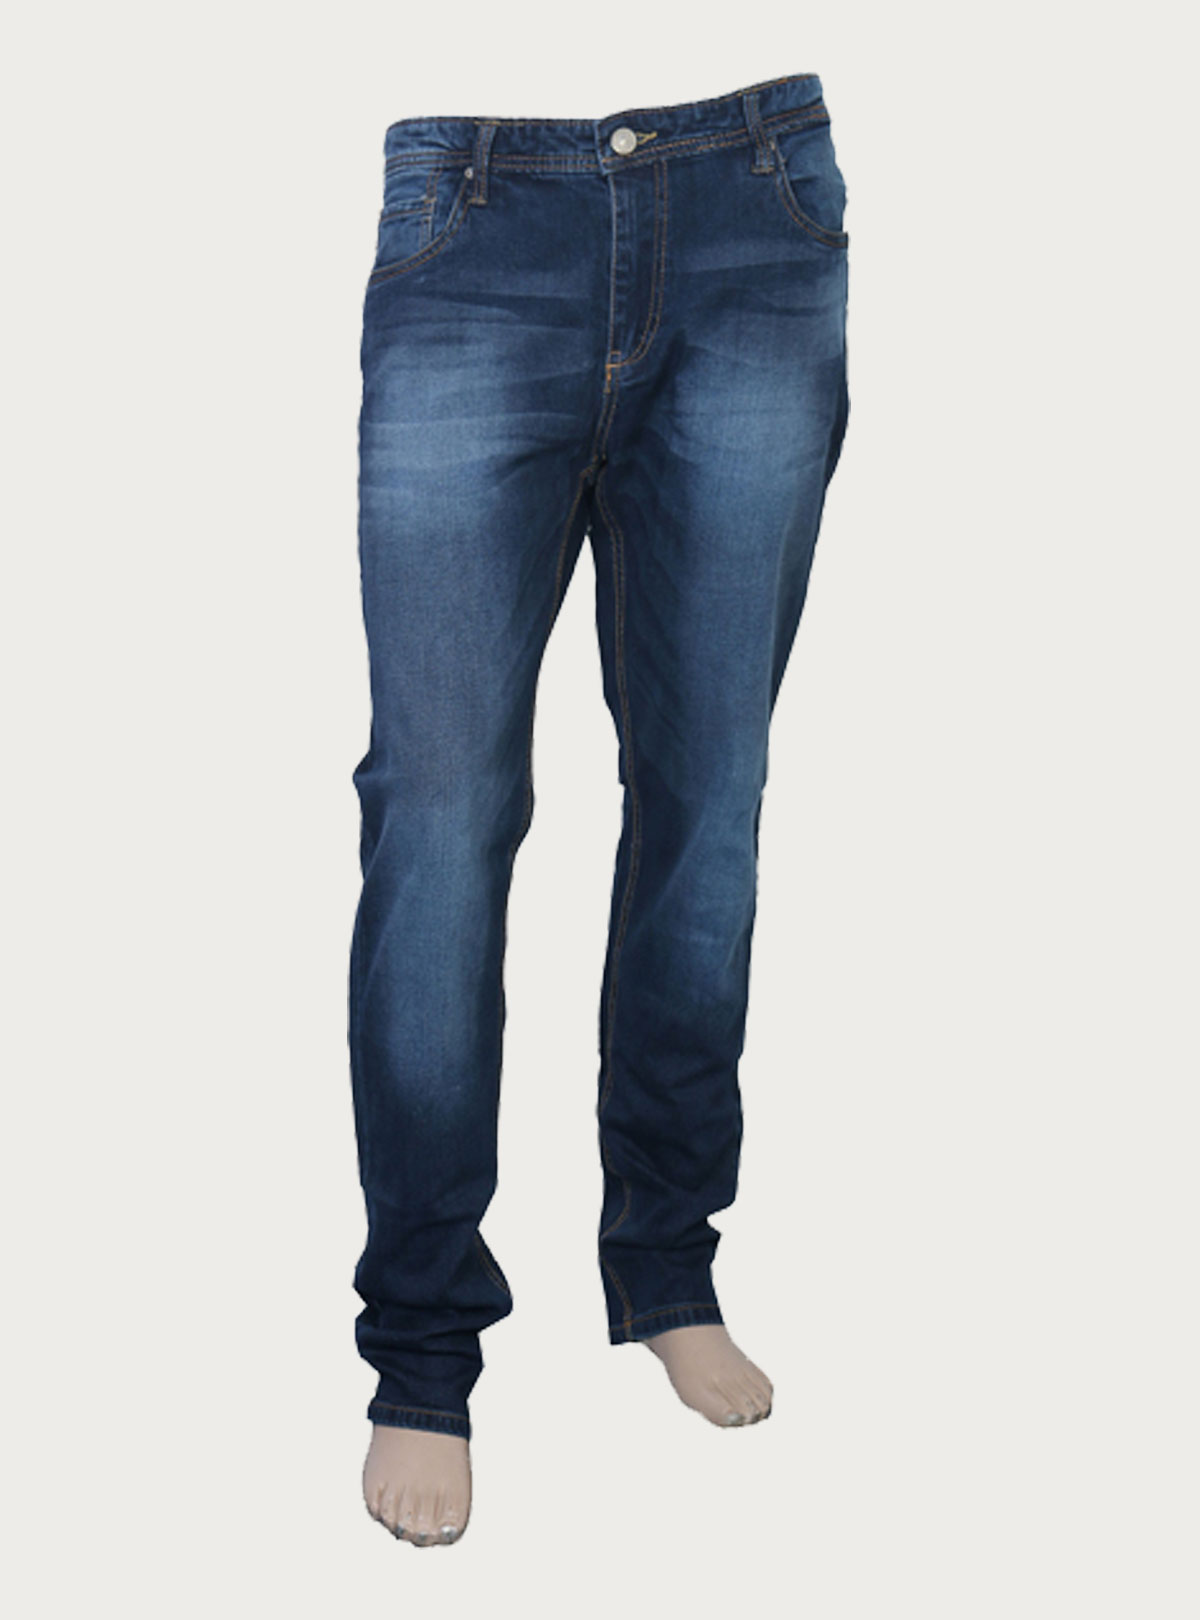 Stylish Jeans By J&J